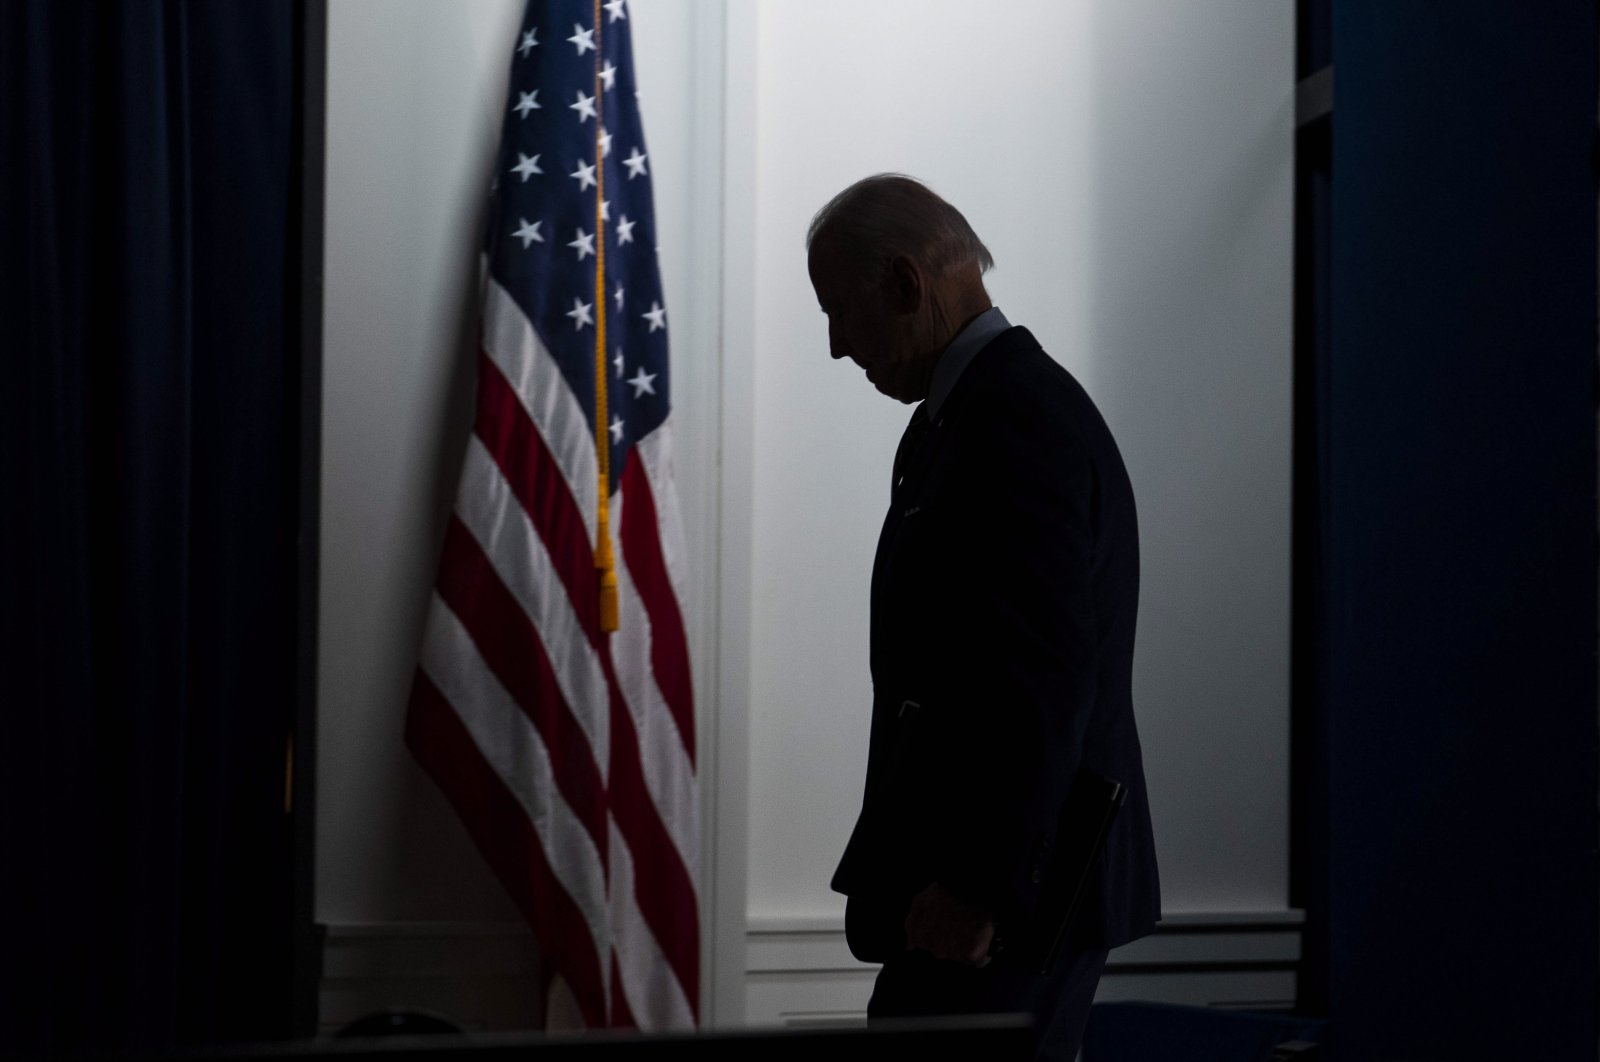 U.S. President Joe Biden walks off stage in the Eisenhower Executive Office Building in Washington, D.C., the U.S., April 21, 2021. (EPA Photo)